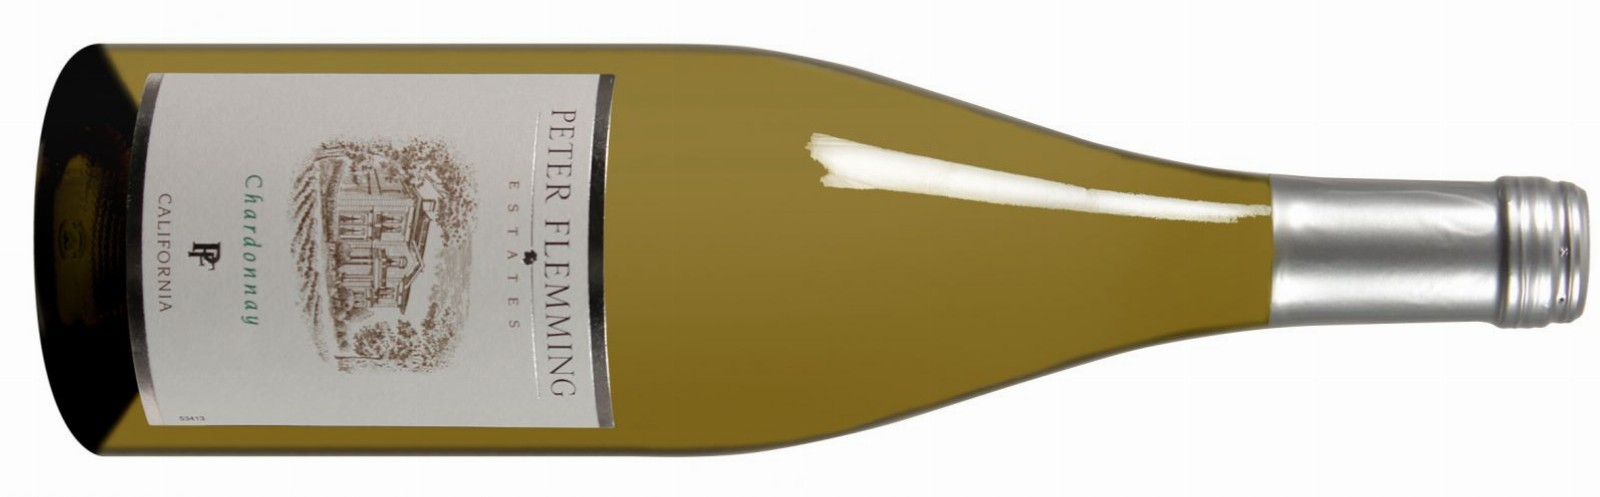 Peter Flemming Estates Chardonnay 2014